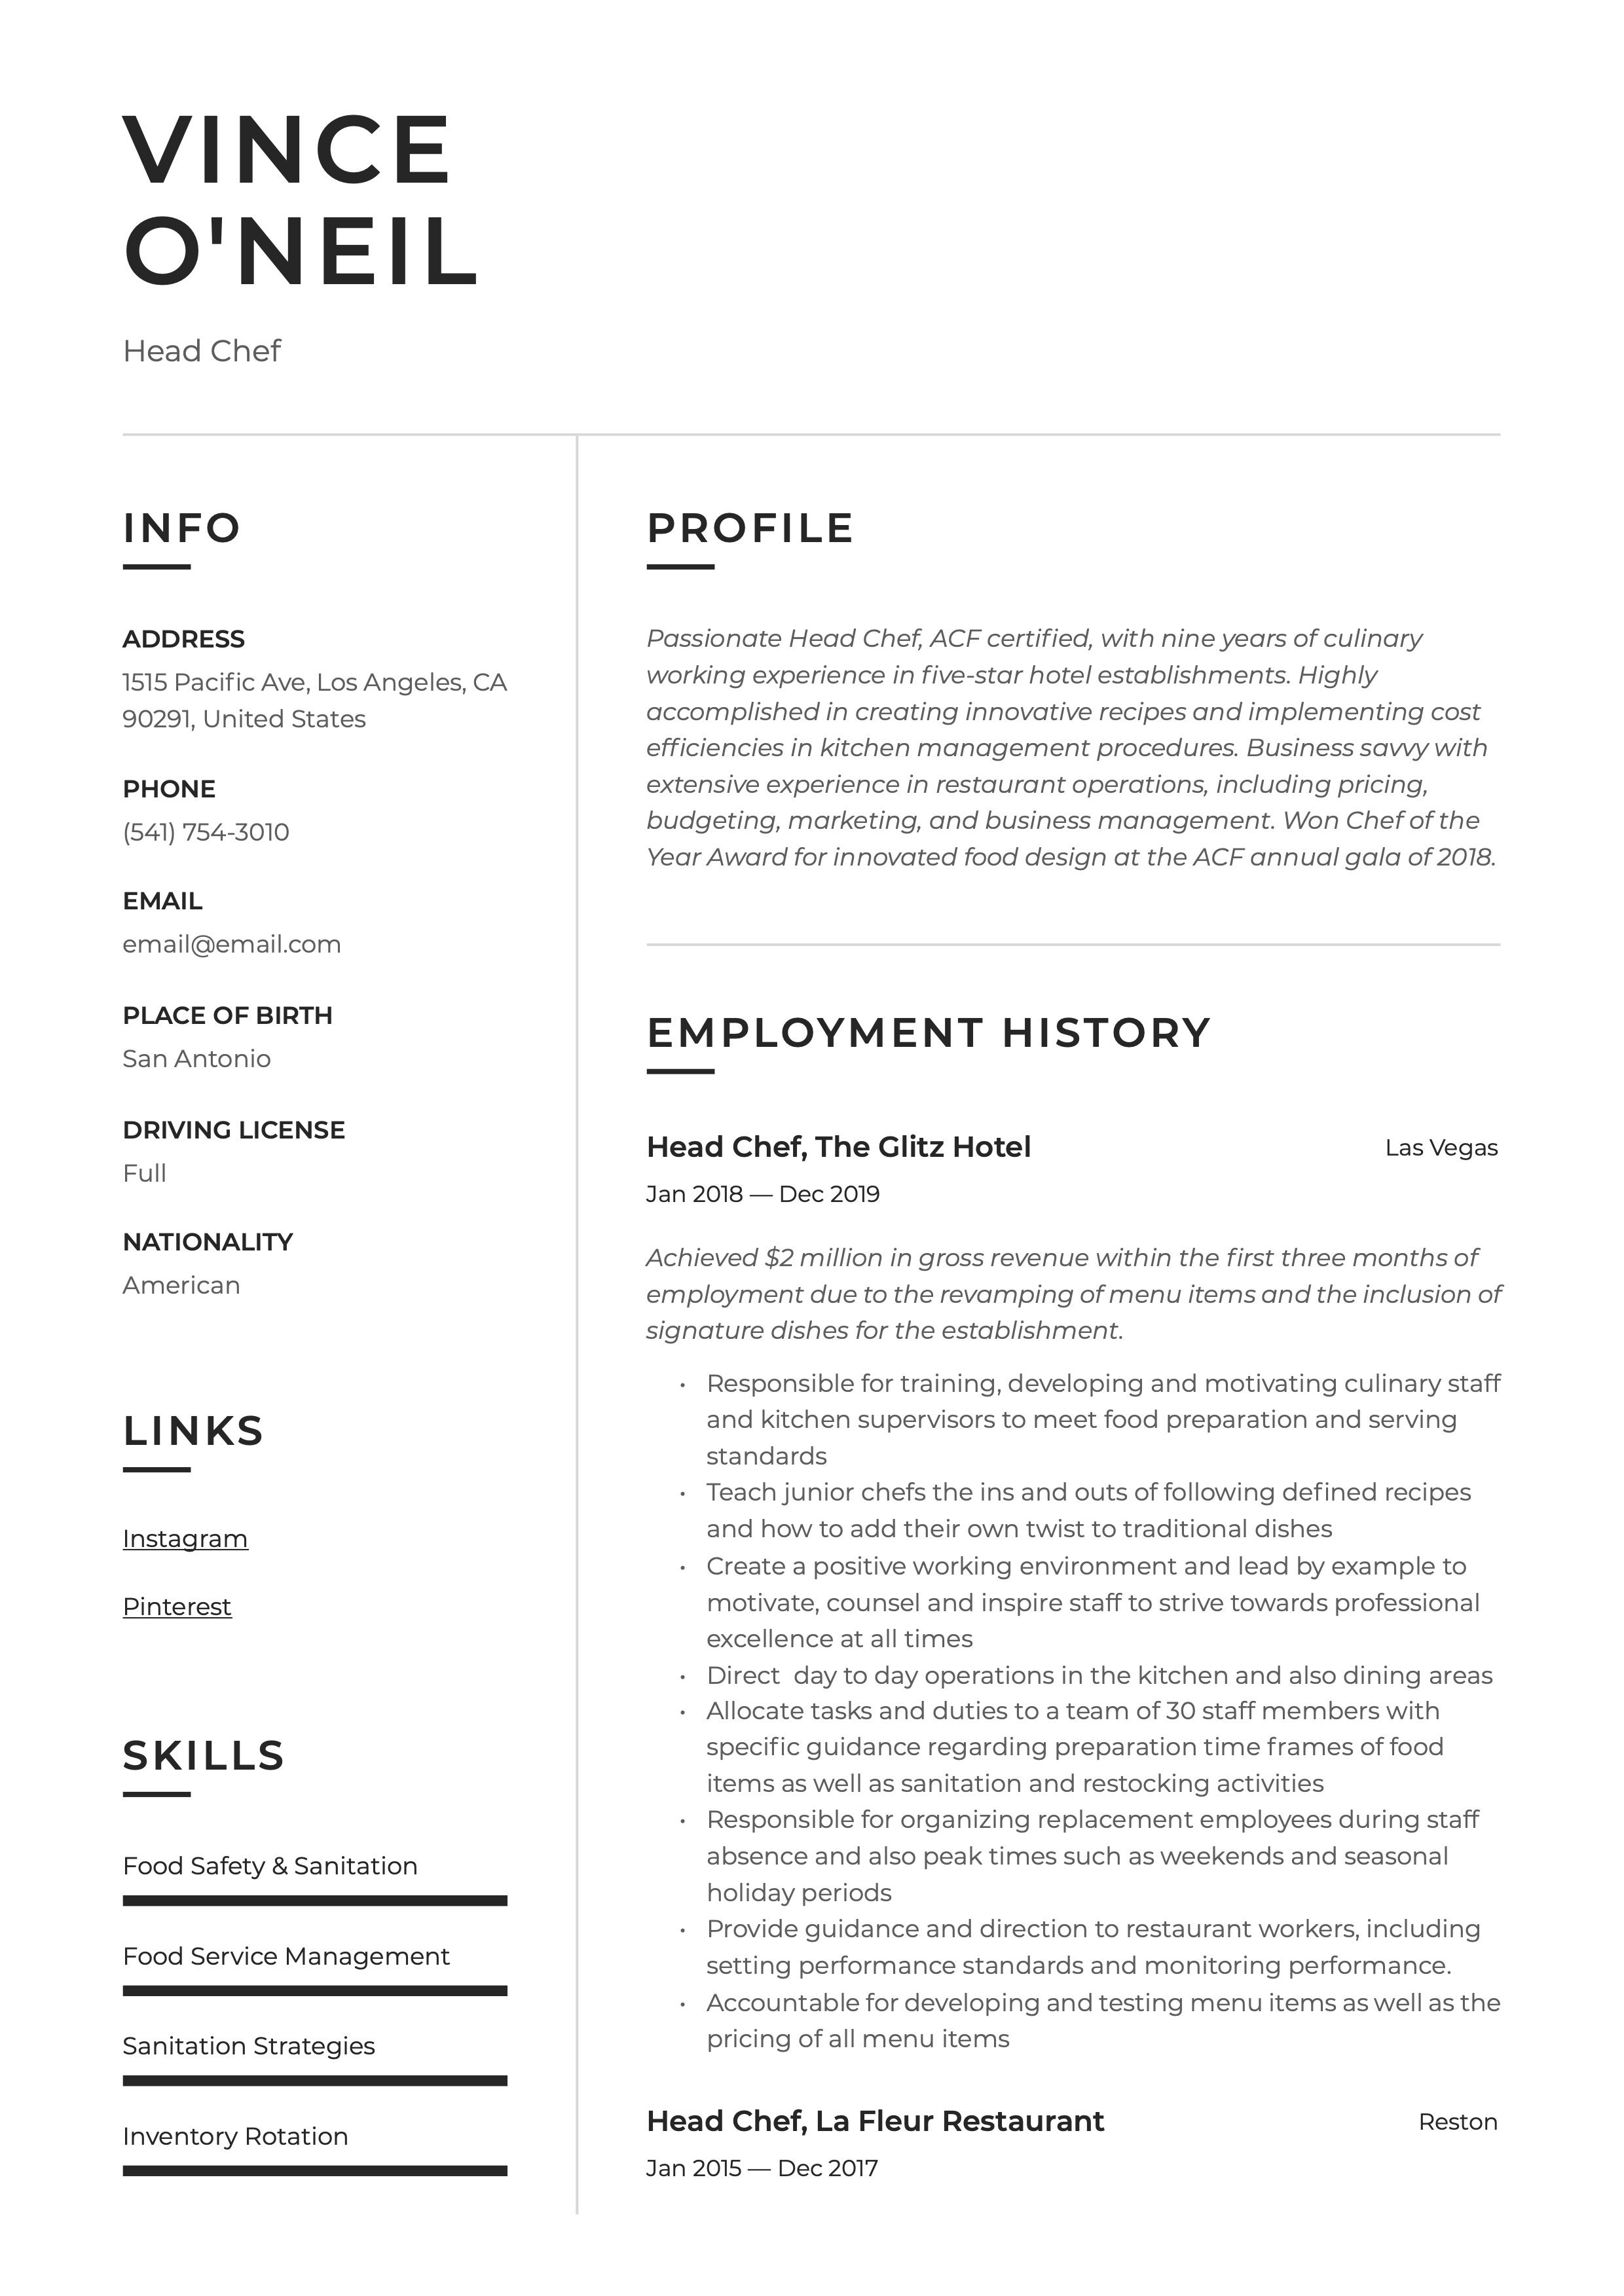 Head chef resume example resume examples resume guide